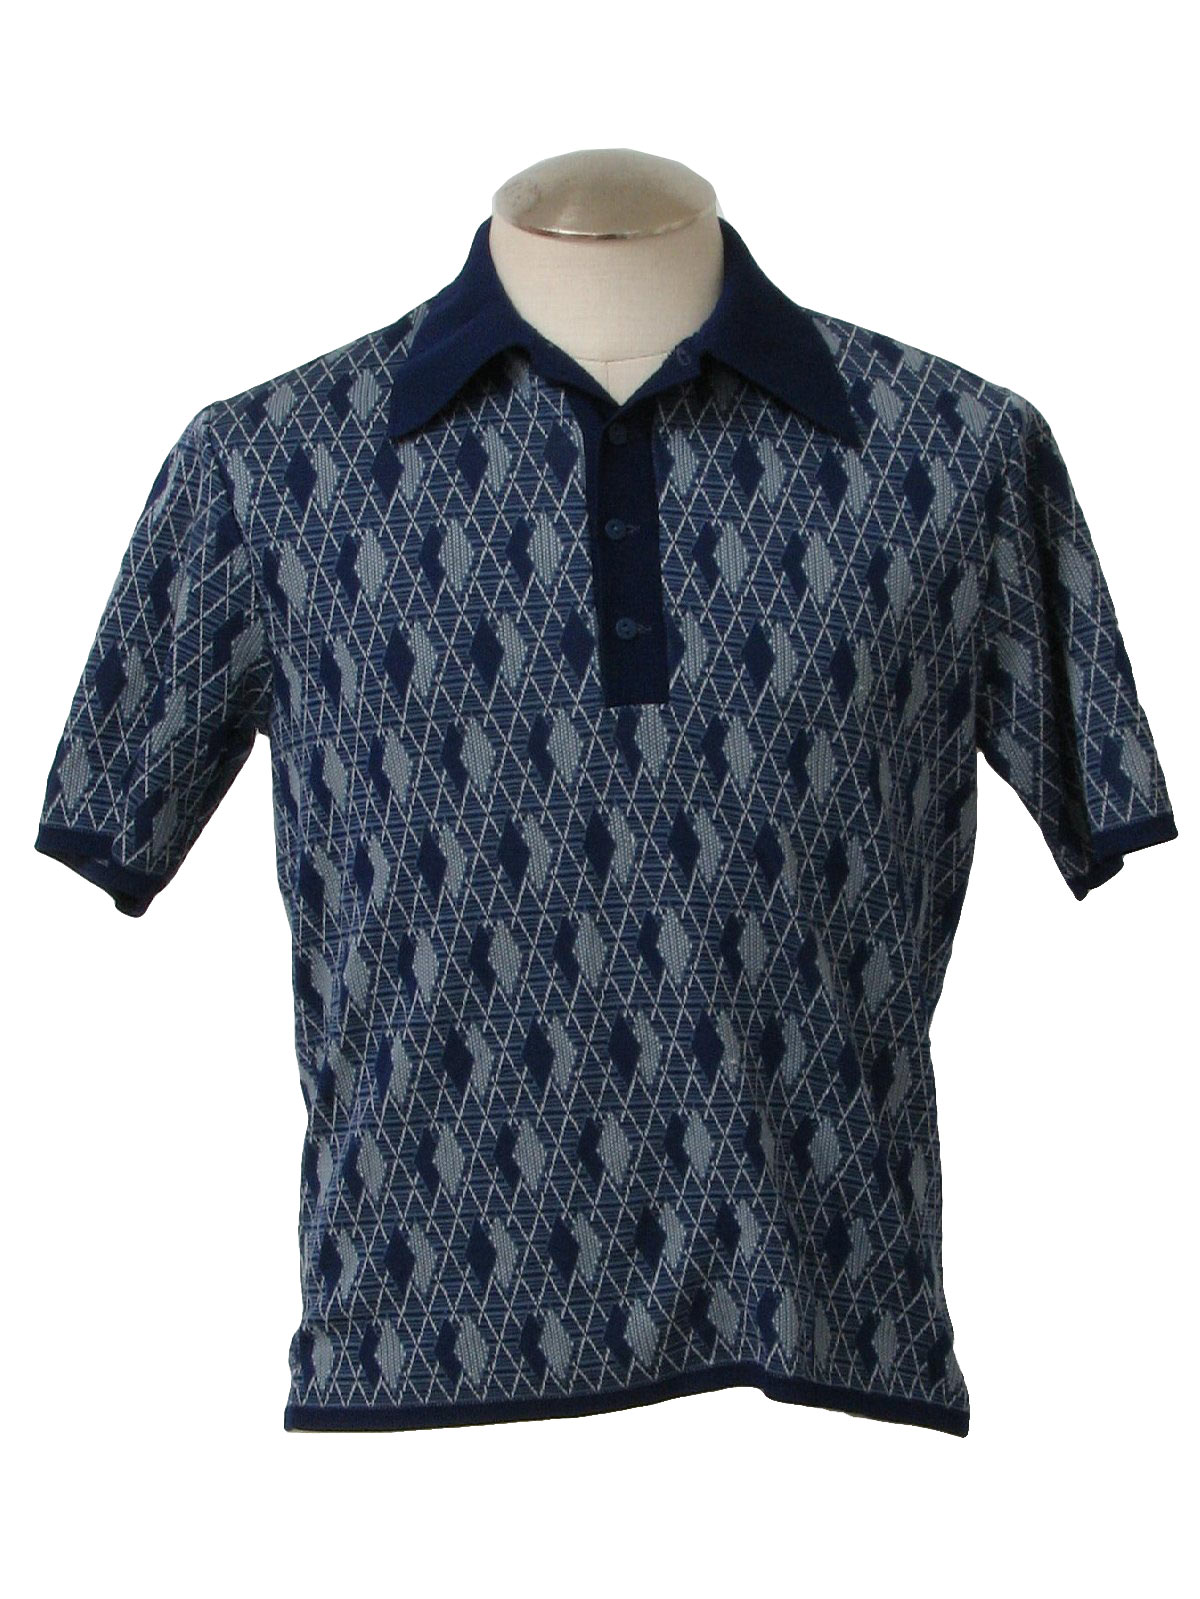 1960s Vintage Knit Shirt: Late 60s -Klopfensteins- Mens navy blue ...